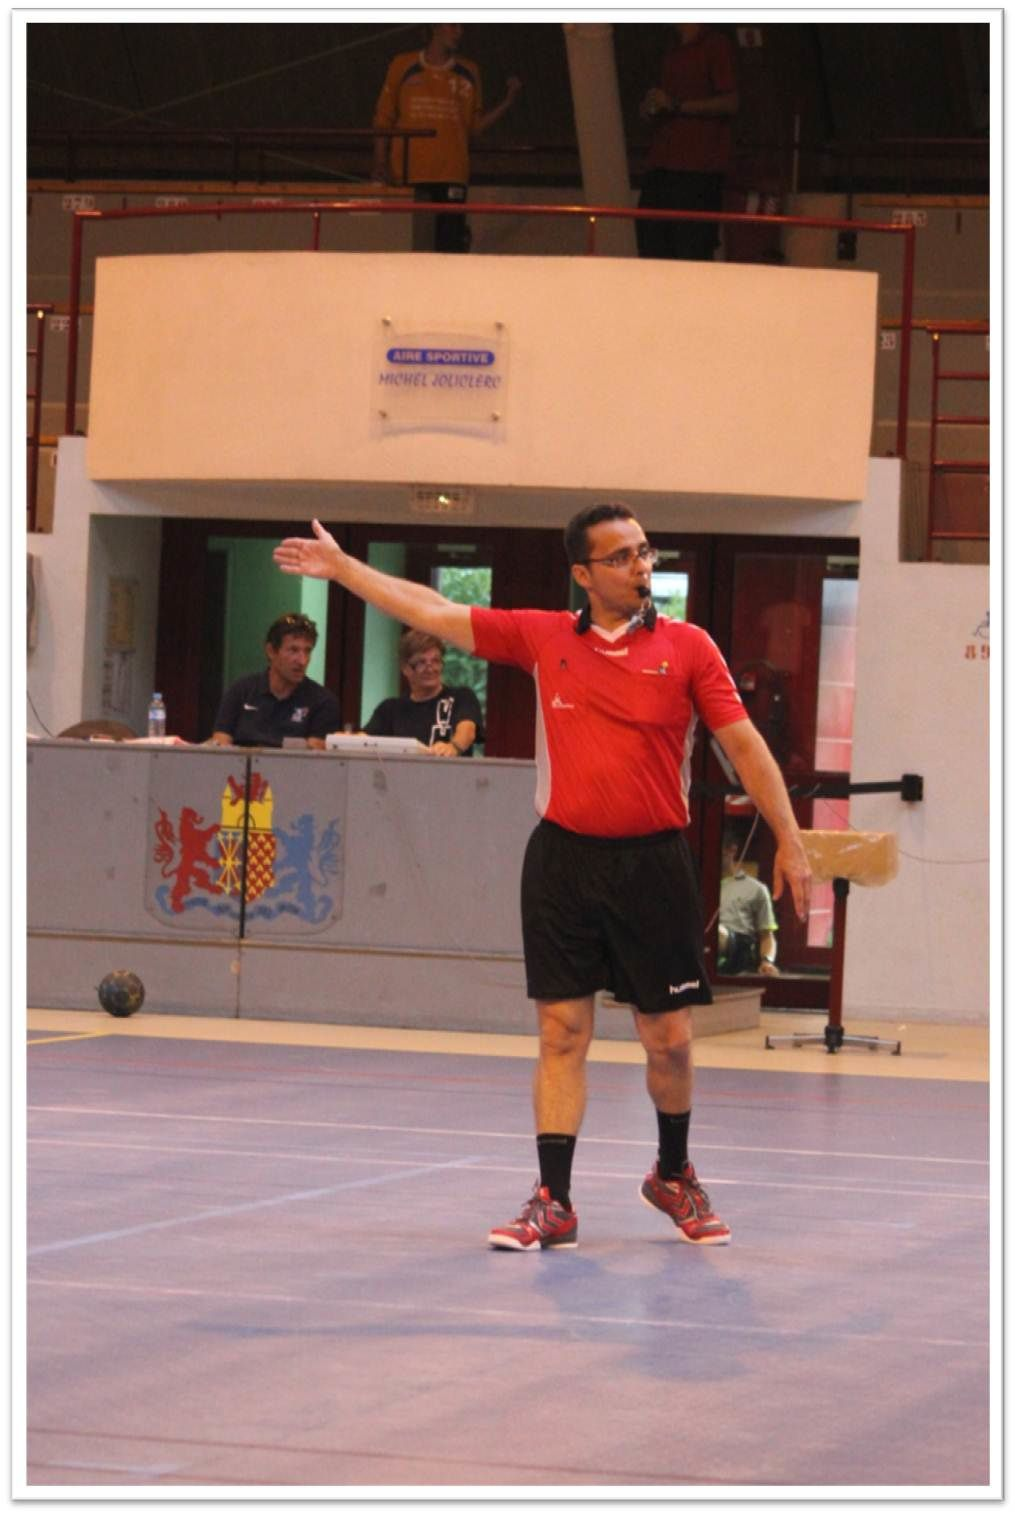 8ème Tournoi Michel Joliclerc (TREMBLAY vs PCT77 -18M)